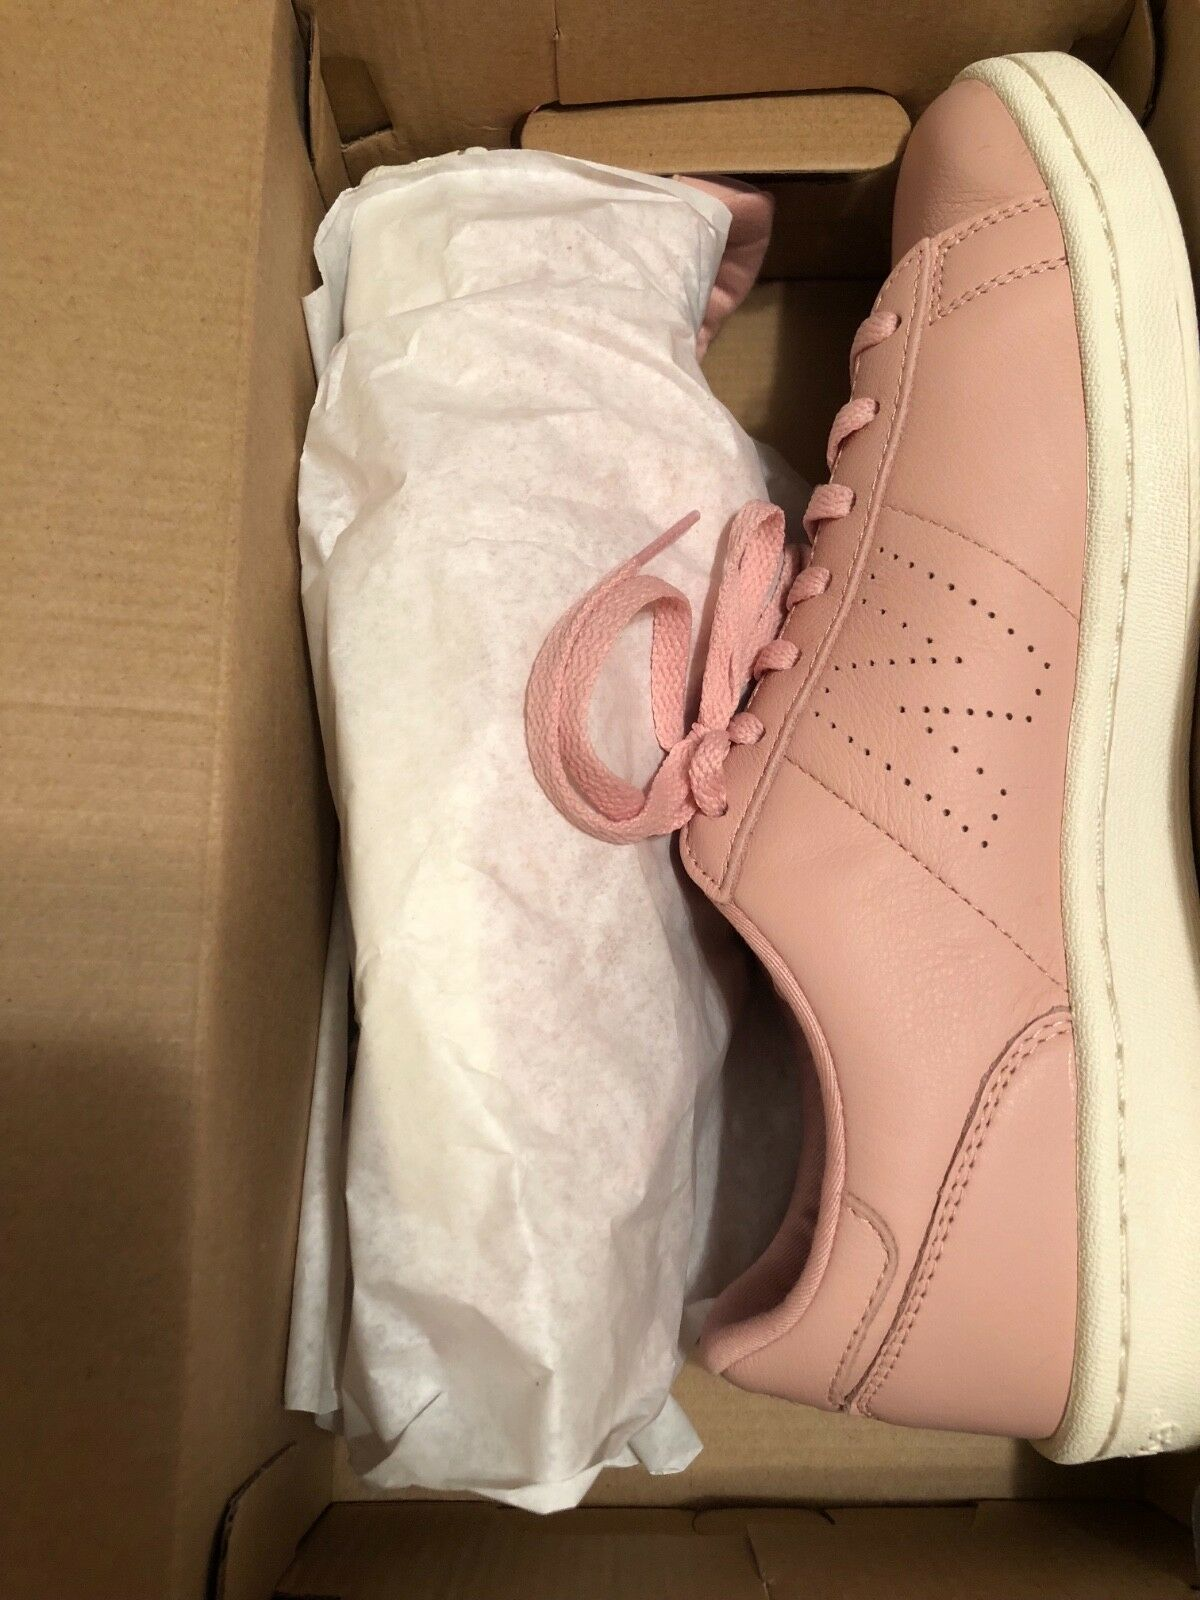 New J. Crew Woman's New Balance® for J.Crew 791 leather court chaussures In rose